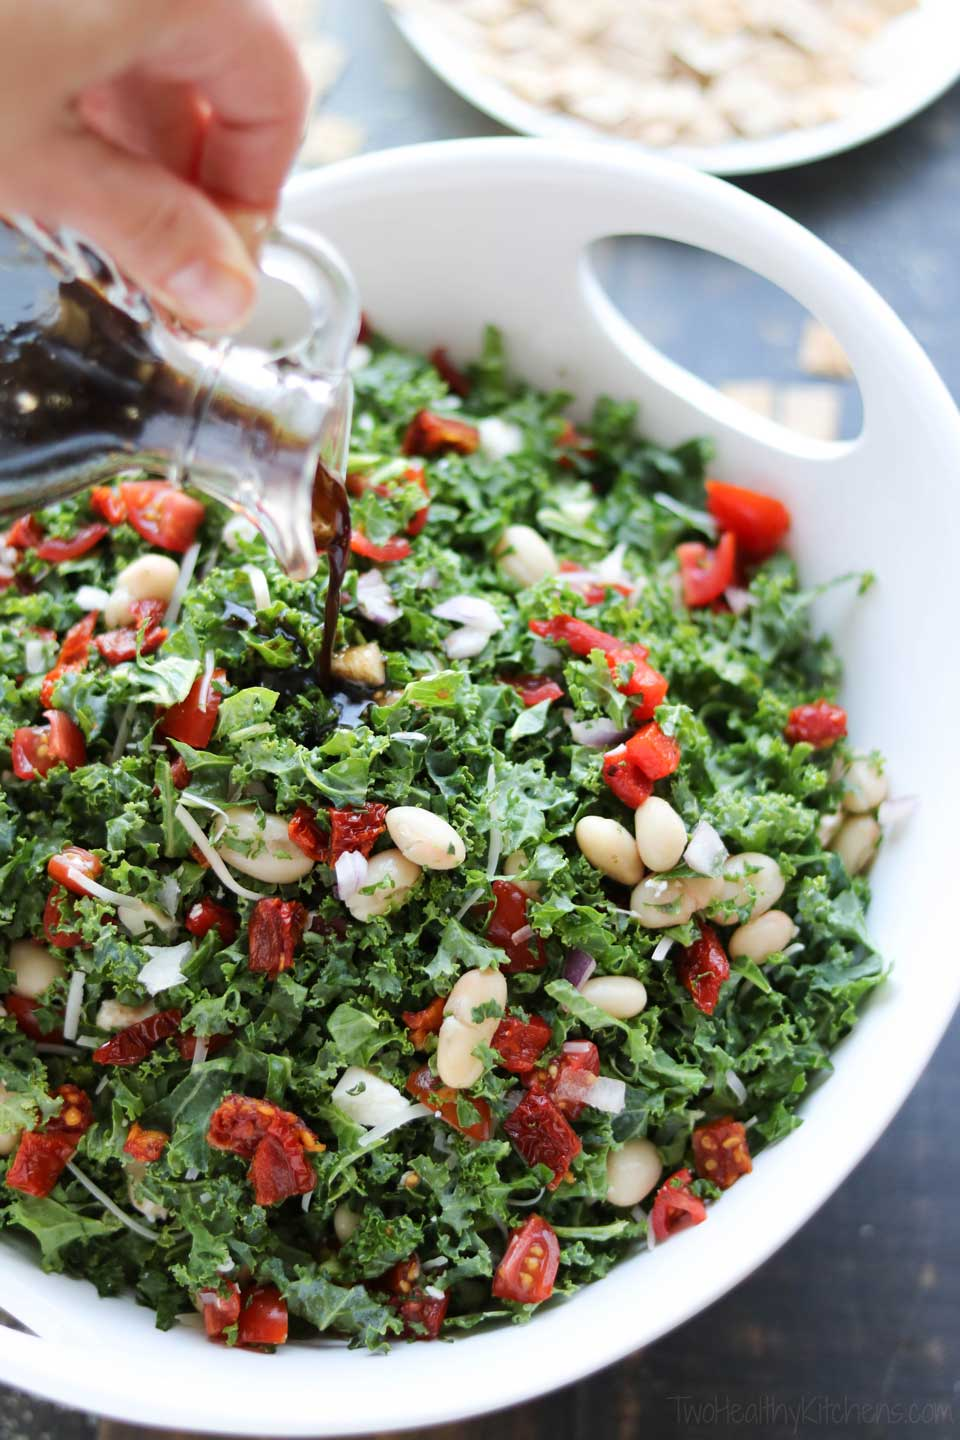 The savory and delicious Honey-Balsamic Dressing for this easy kale salad can be made in advance, so it's ready to go when you are!